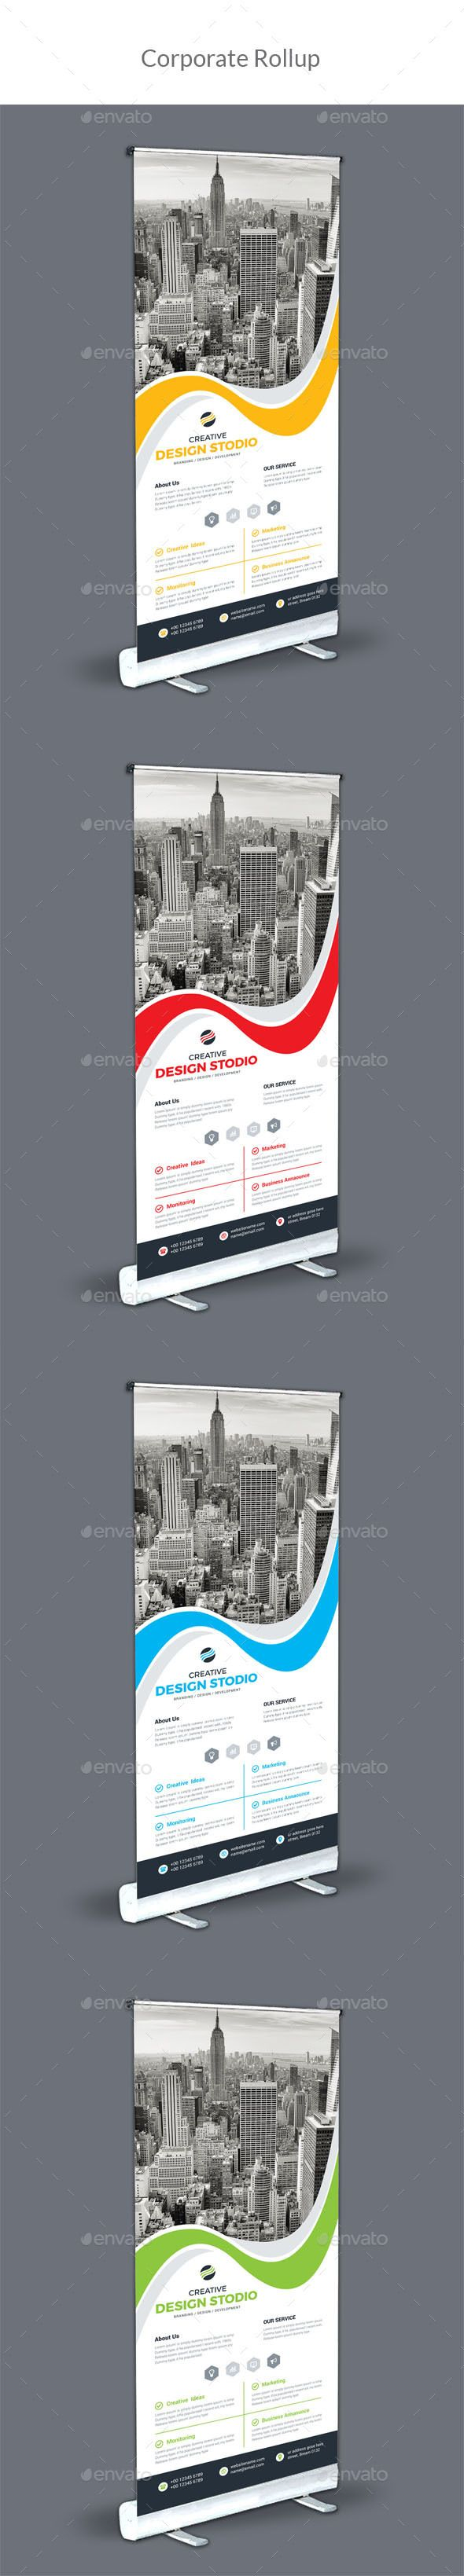 Corporate Roll-Up Template Vector EPS, AI #design Download: http://graphicriver.net/item/corporate-roll-up/14263706?ref=ksioks